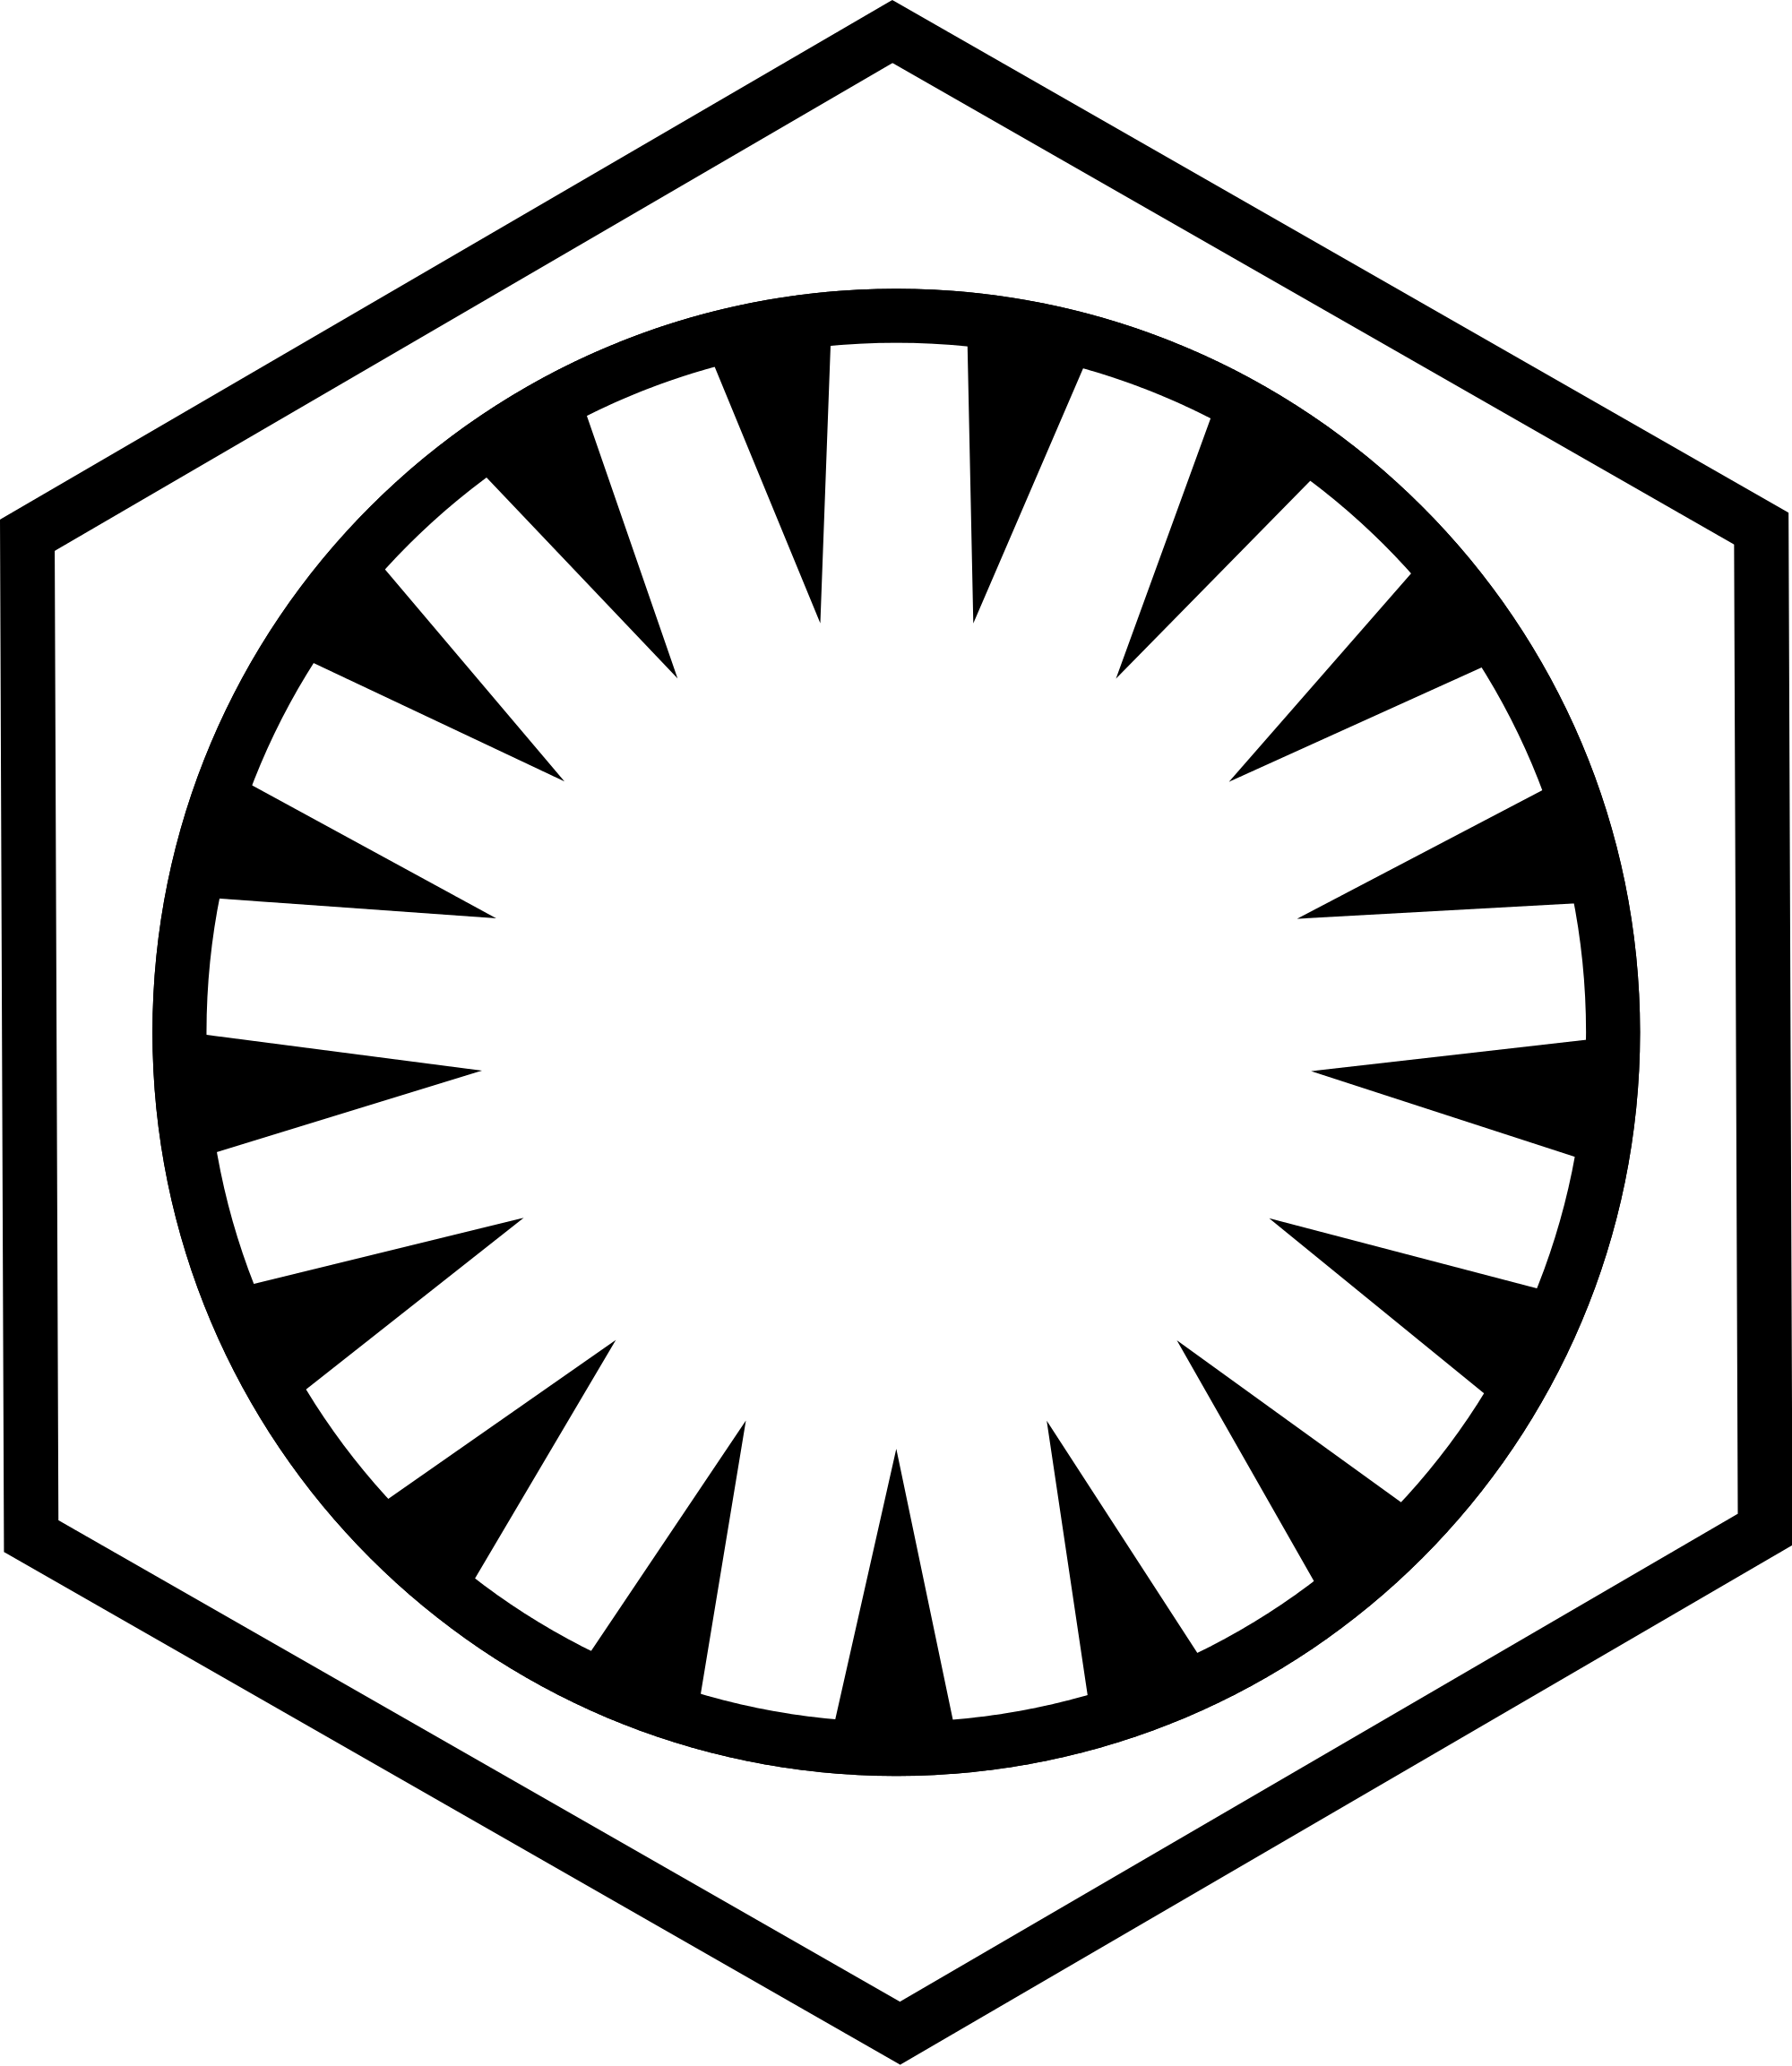 Planets clipart star wars planet. First order wikipedia emblem